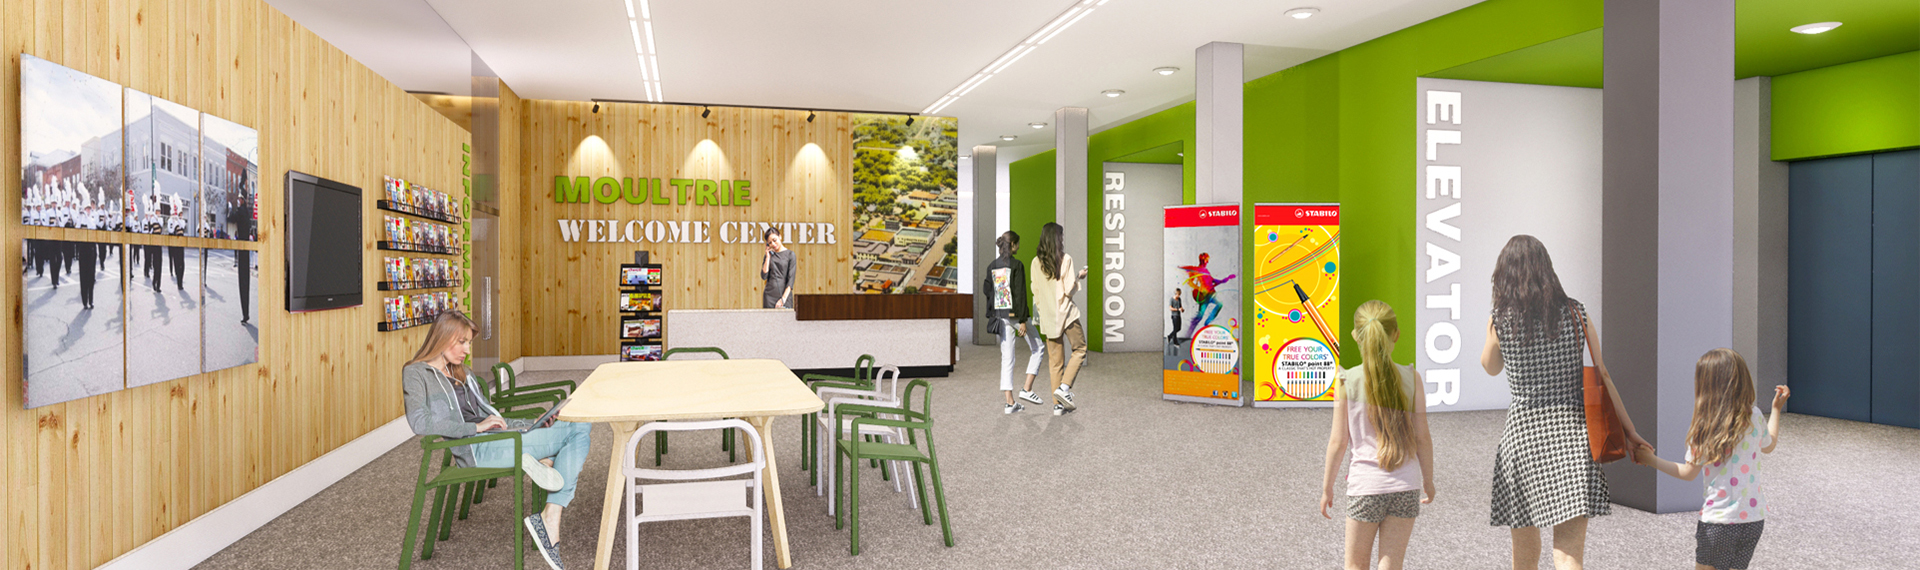 Artist's rendering of new Moultrie welcome center